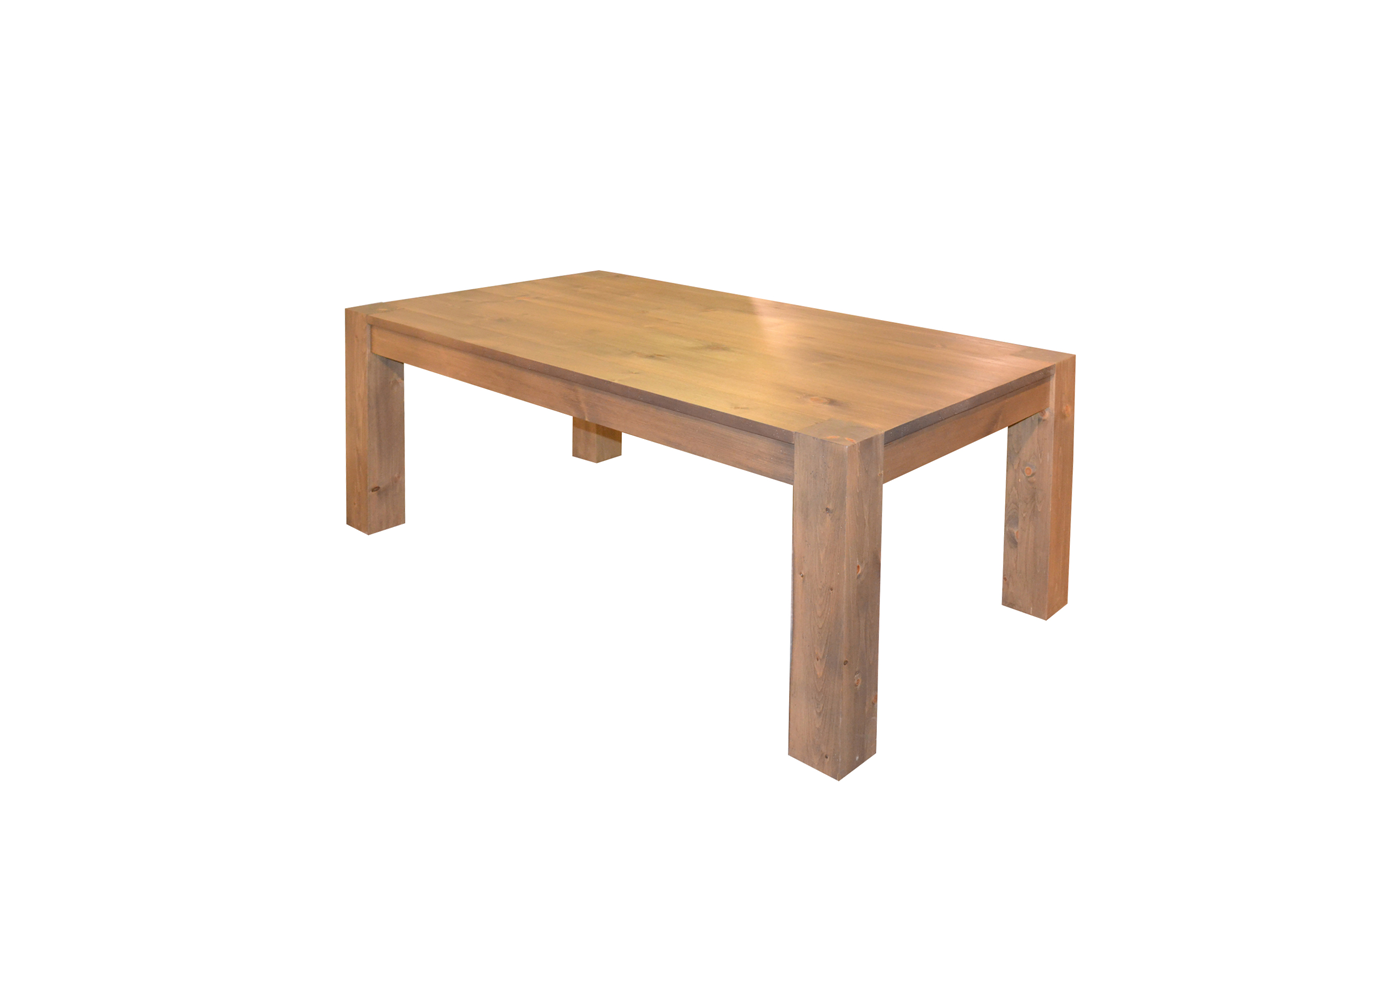 Polanco furniture store ottawa interior decor solutions for 5 foot dining room table